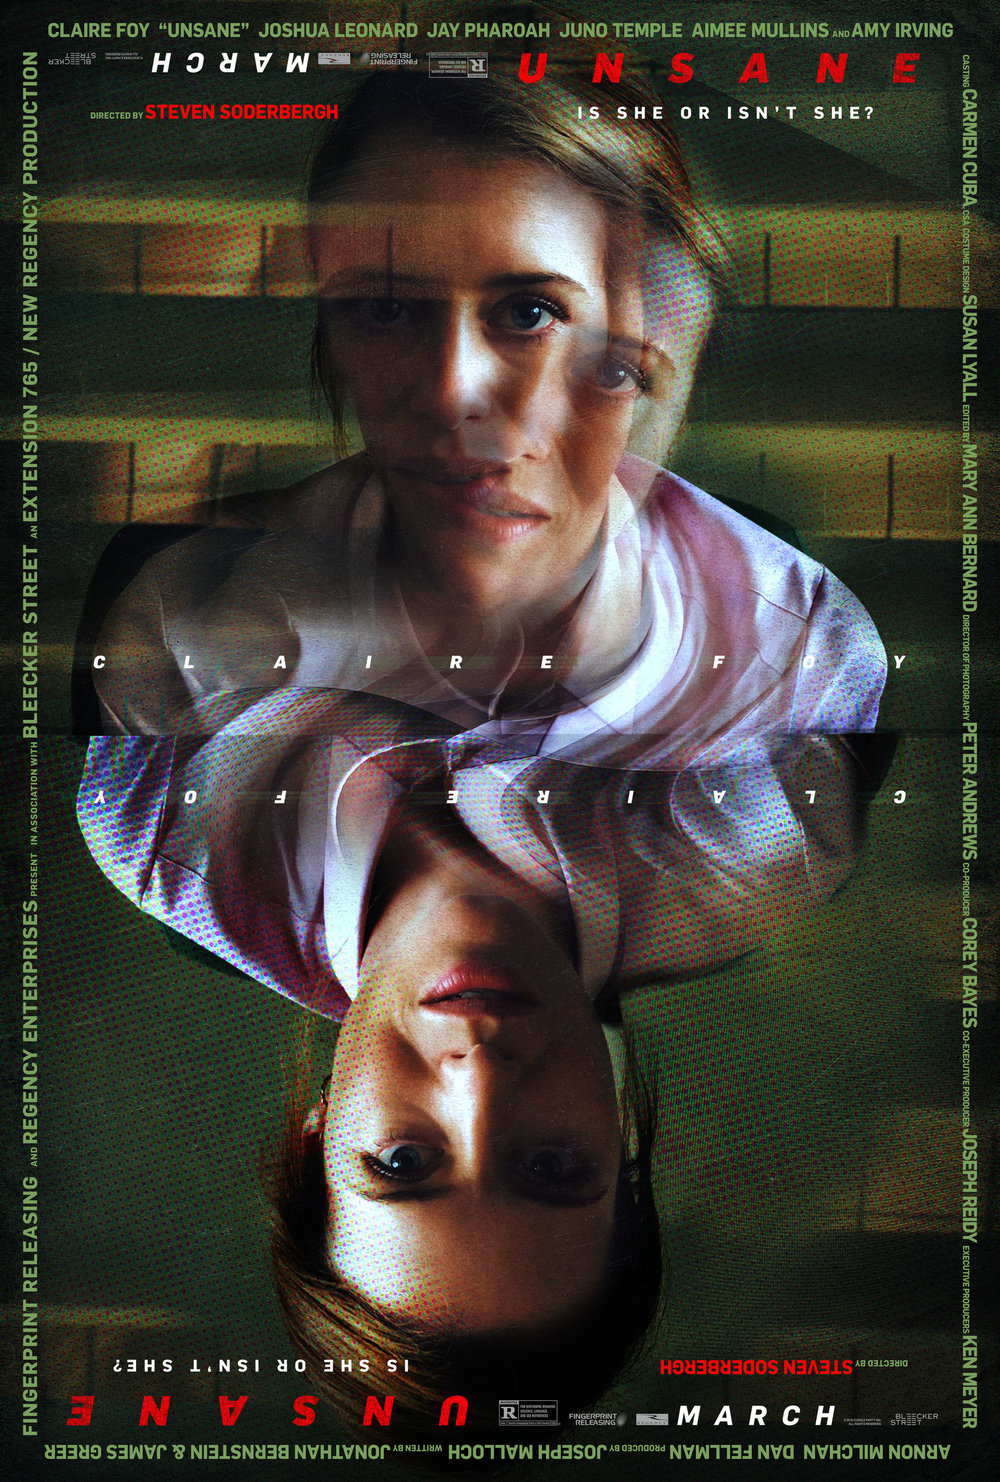 Unsane (2018) - Directed by: Steven SoderberghStarring: Claire Foy, Joshua Leonard, Jay PharoahRated: R for Disturbing Behavior, Violence, Language, and Sex ReferencesRunning Time: 1 h 38 mTMM Score: 2.5 stars out of 5STRENGTHS: Writing, ActingWEAKNESSES: Distractingly Bad Cinematography, Pacing